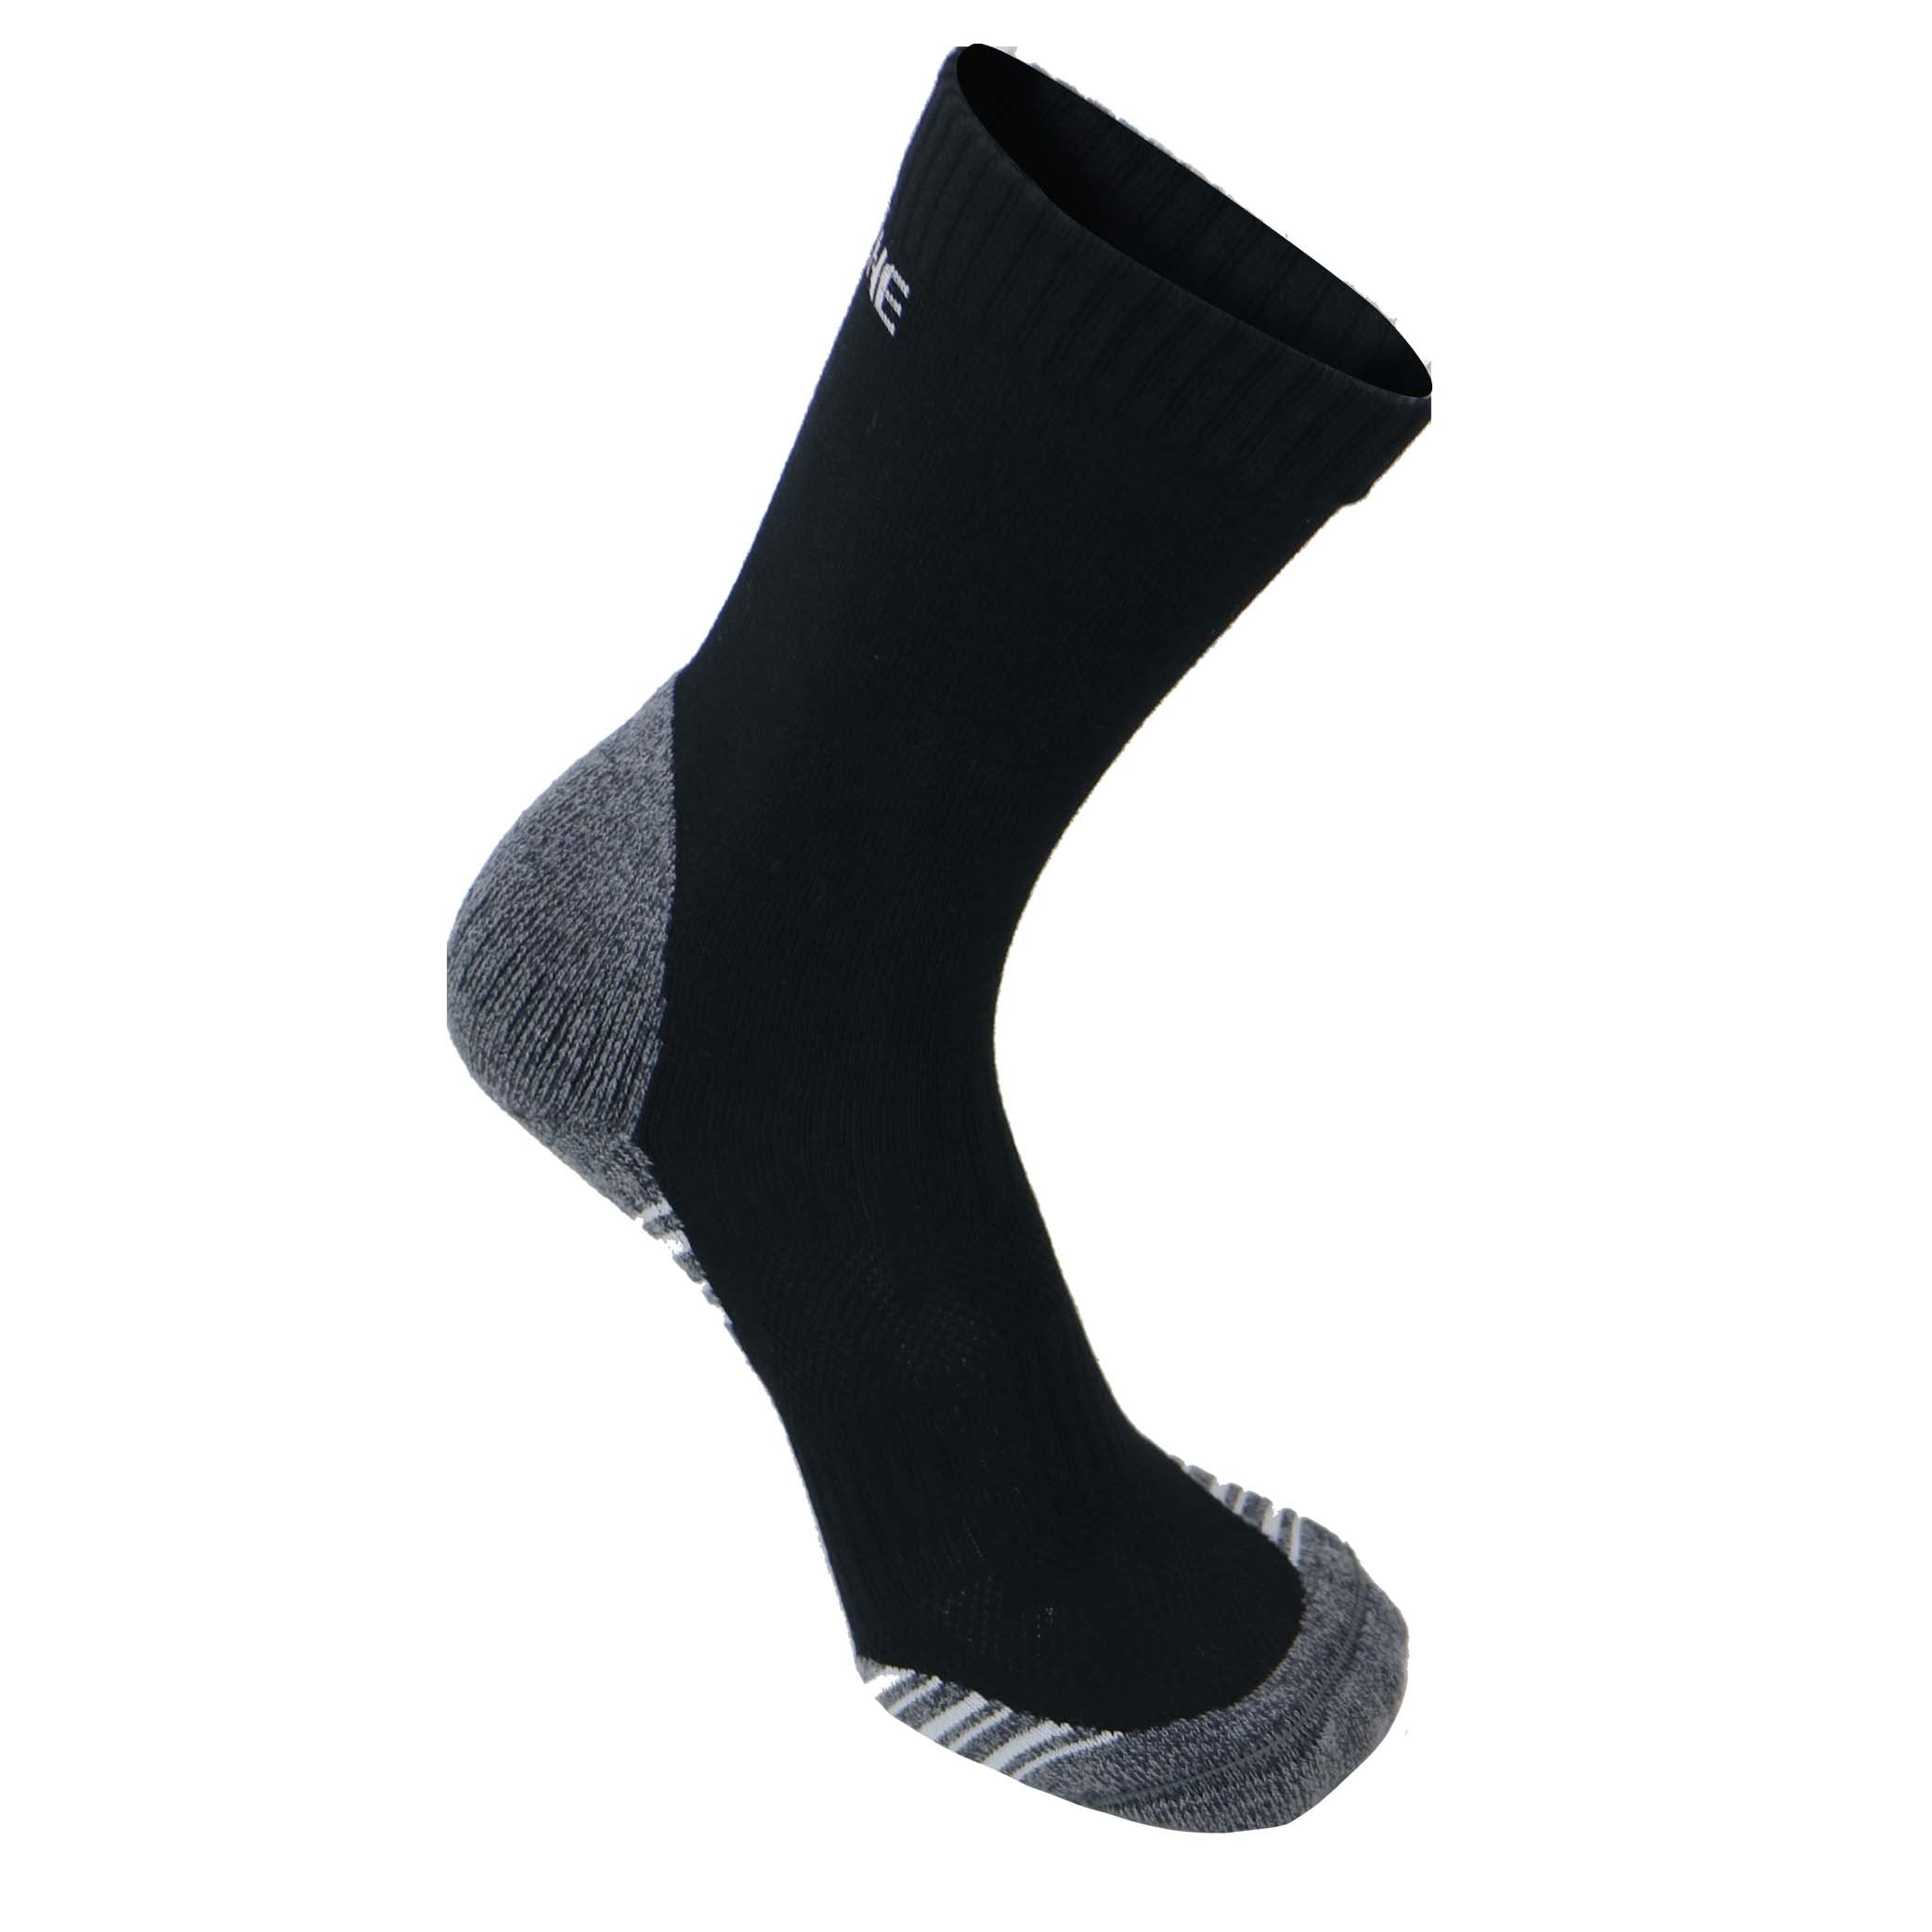 Tread Light Grey/Black with COOLMAX® and Merino